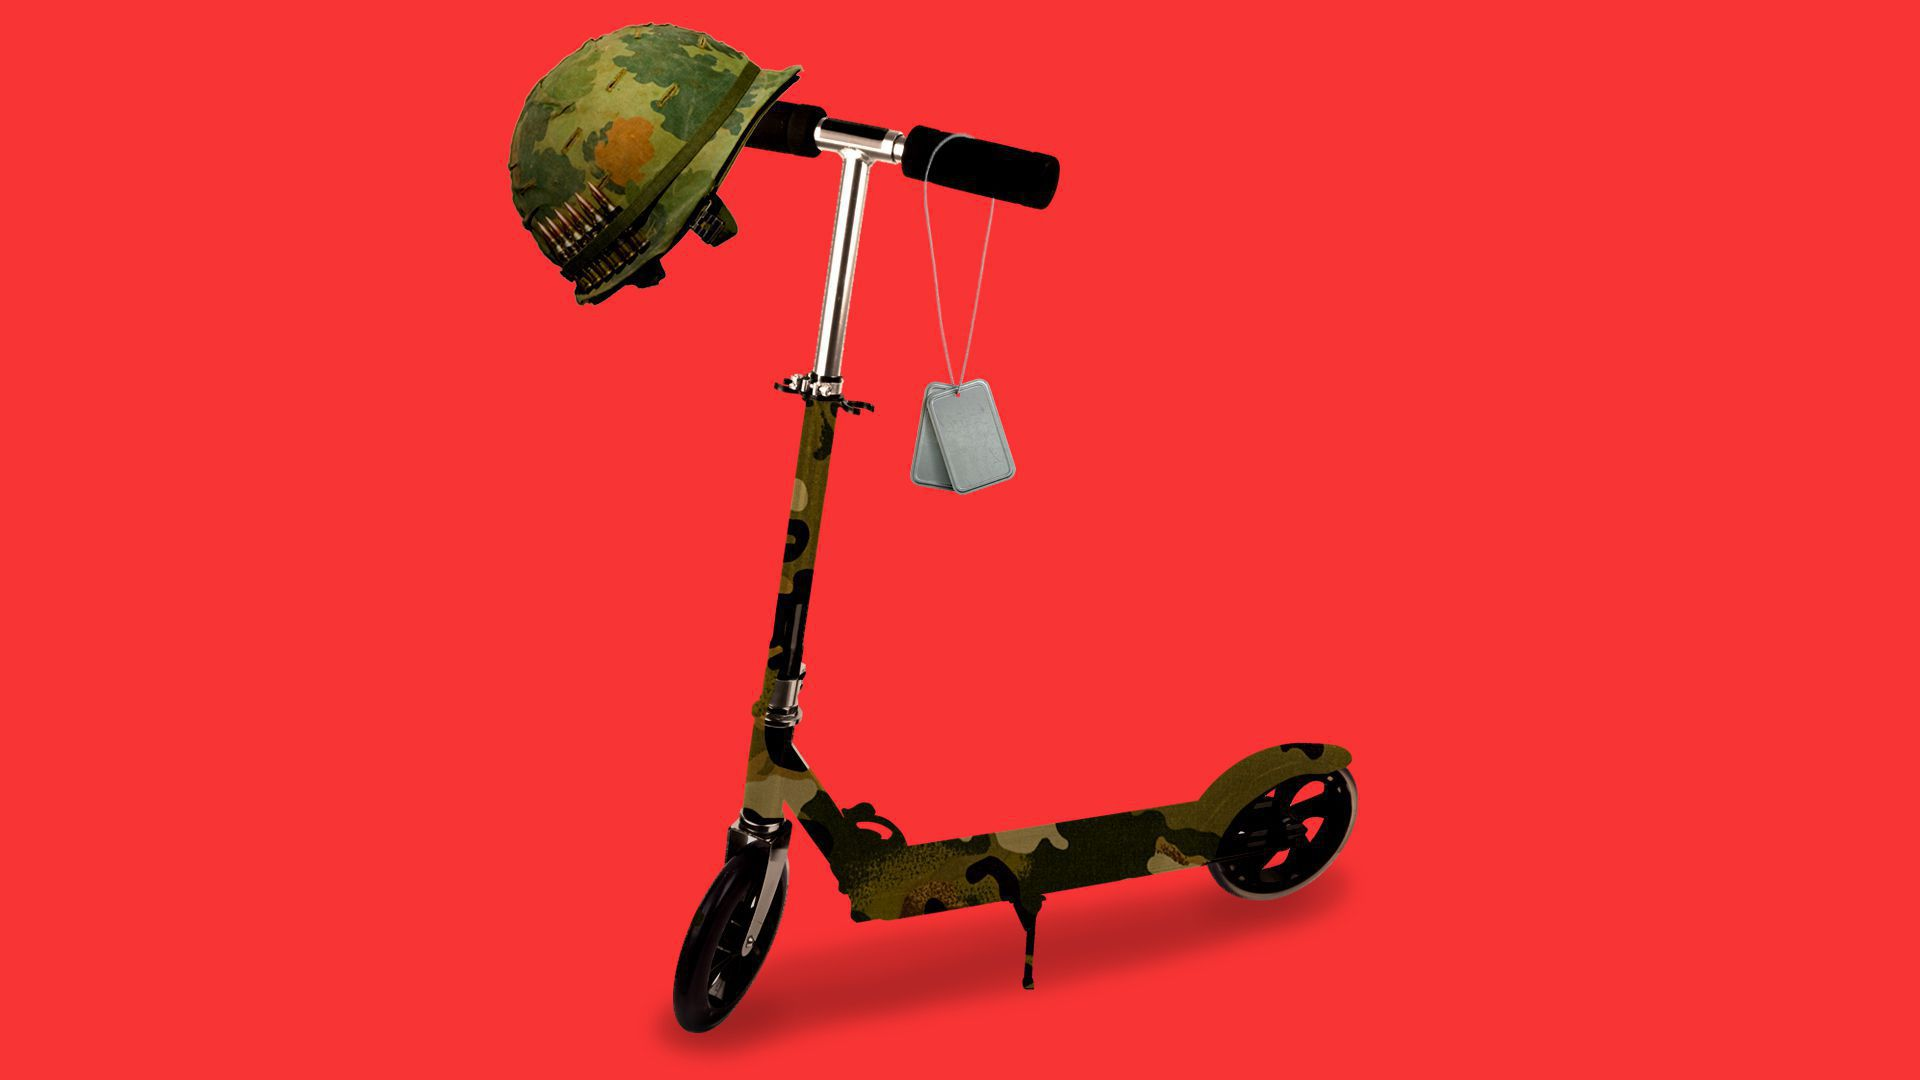 Illustration of an electric scooter